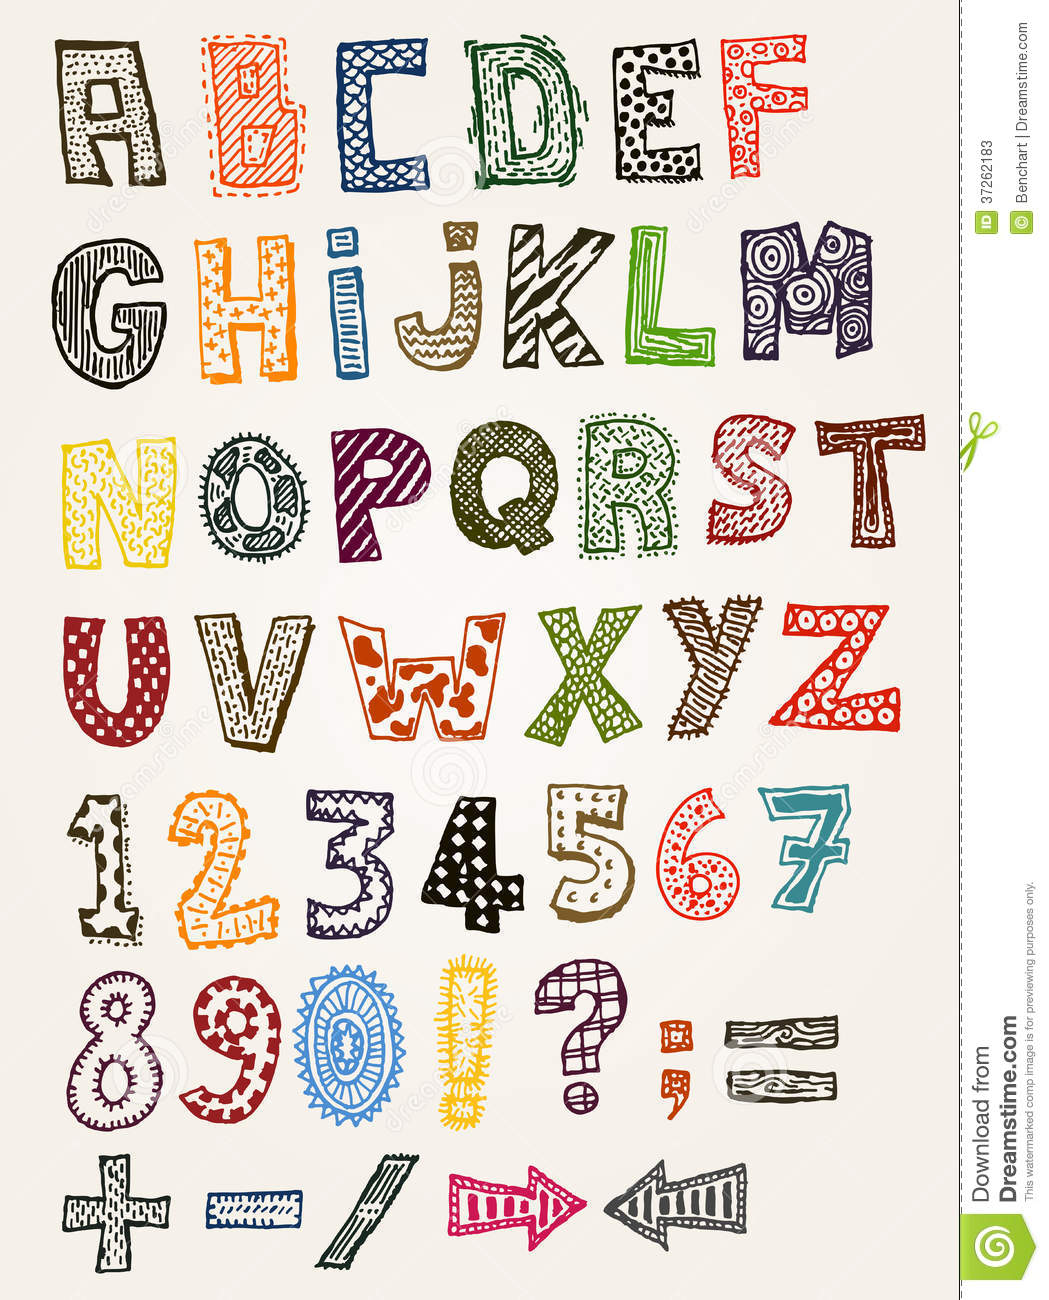 Doodle Fancy ABC Alphabet Stock Photos - Image: 37262183